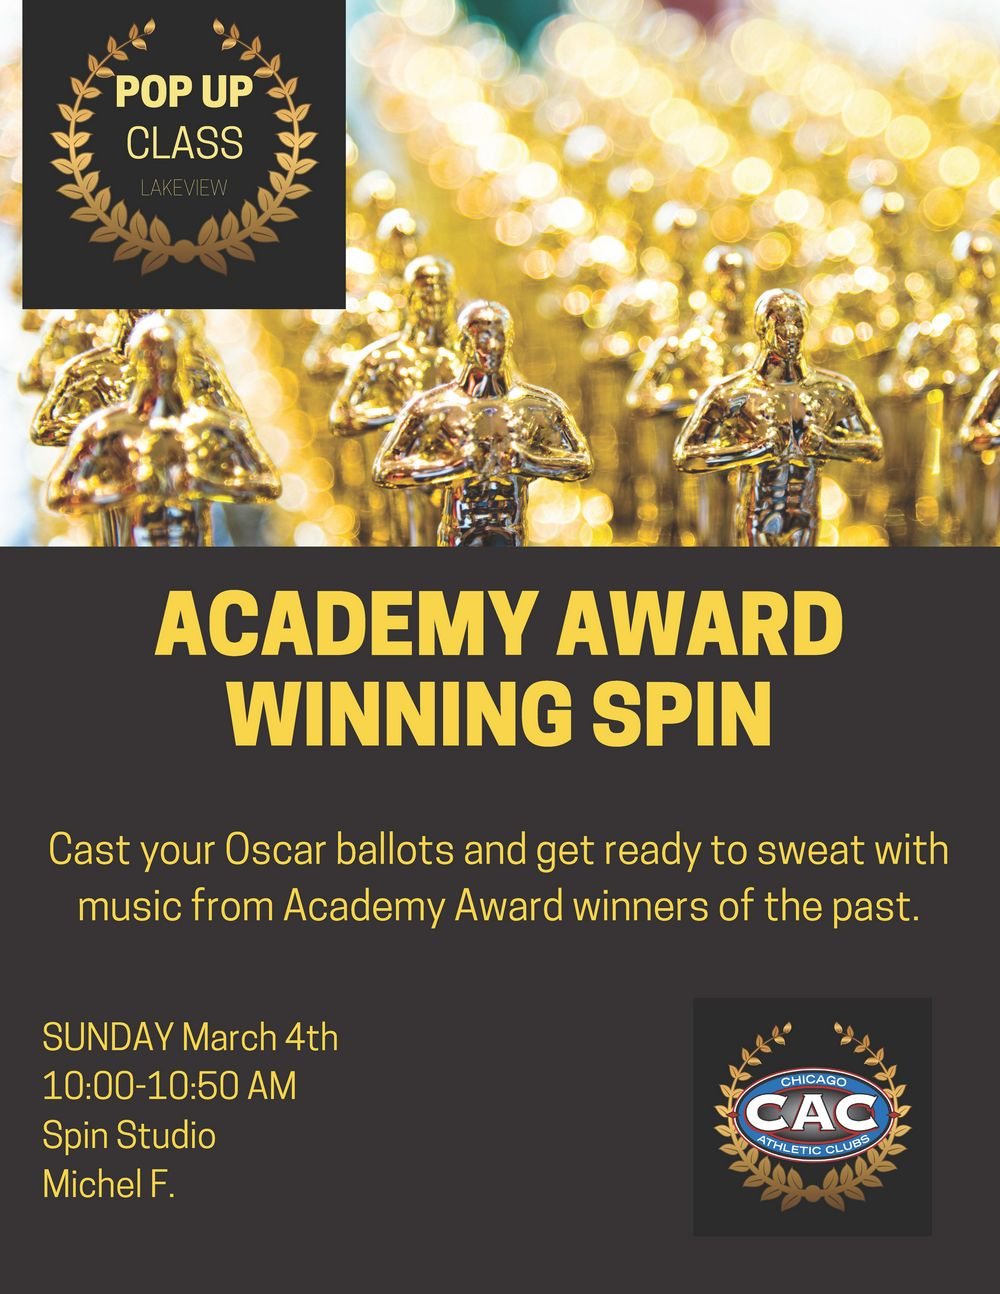 POP UP Academy Award Spin LVAC.jpg